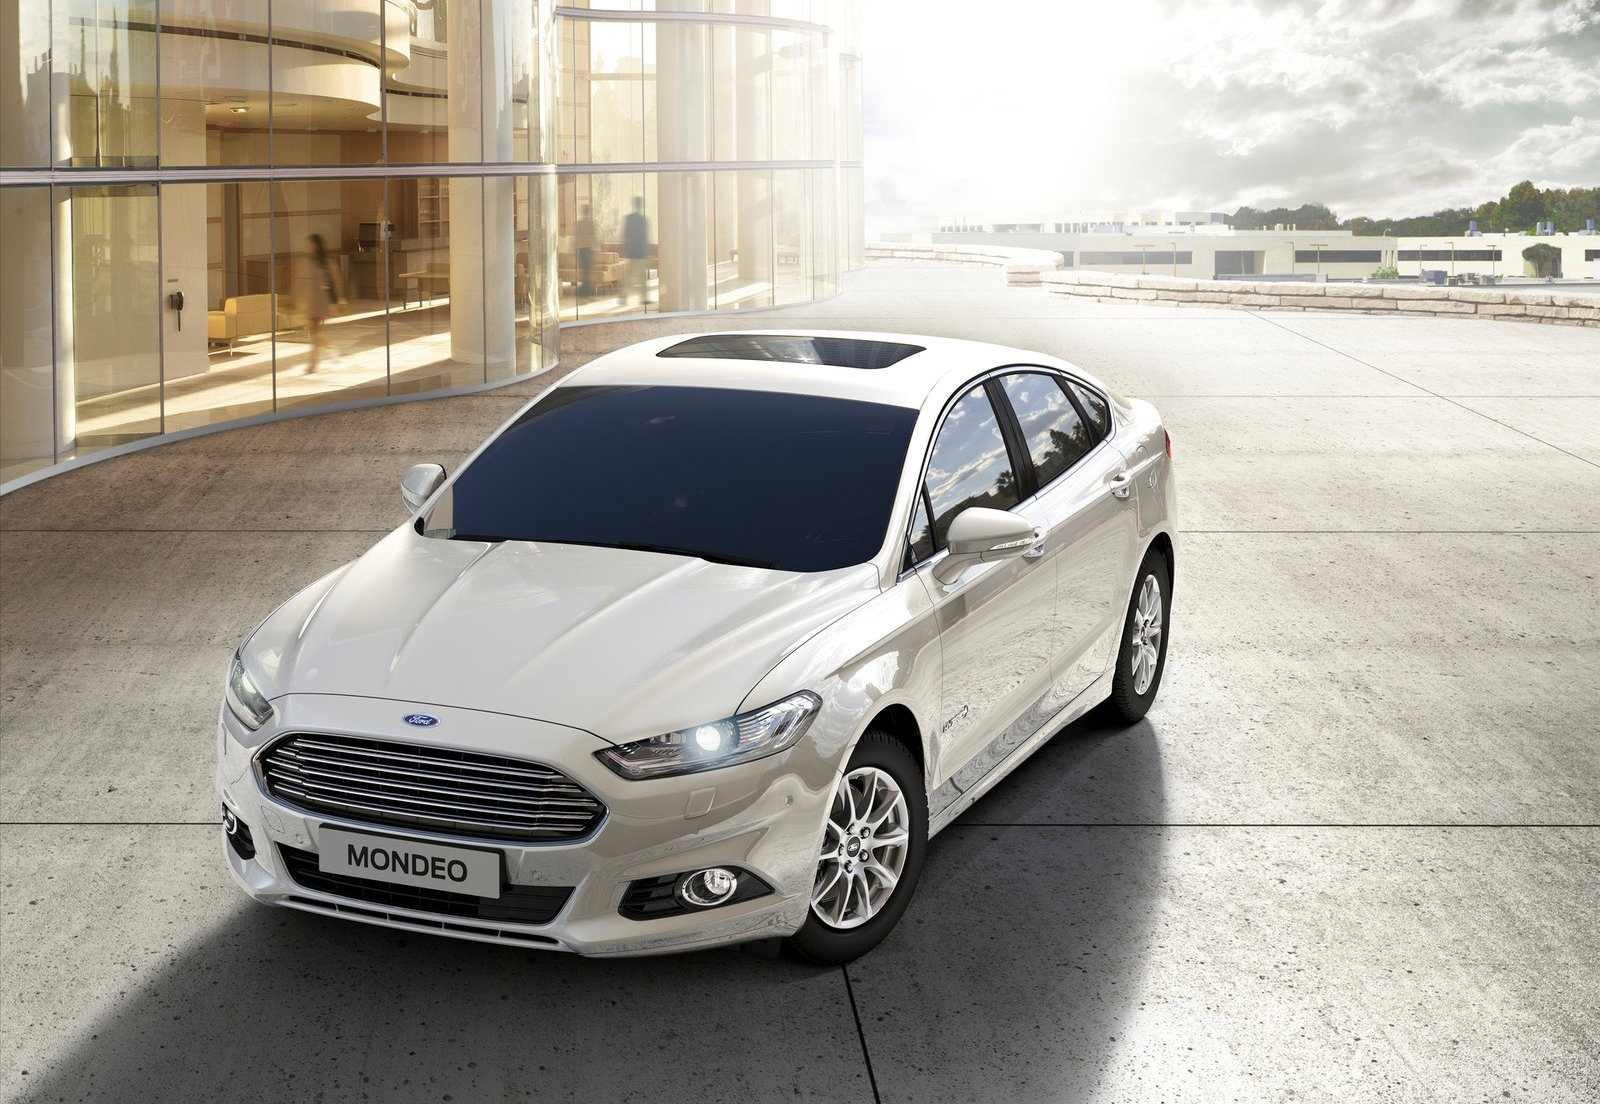 Ford Mondeo 2015 White >> 2015 Ford Mondeo Hybrid Entered Production in Spain, Pricing Announced - autoevolution